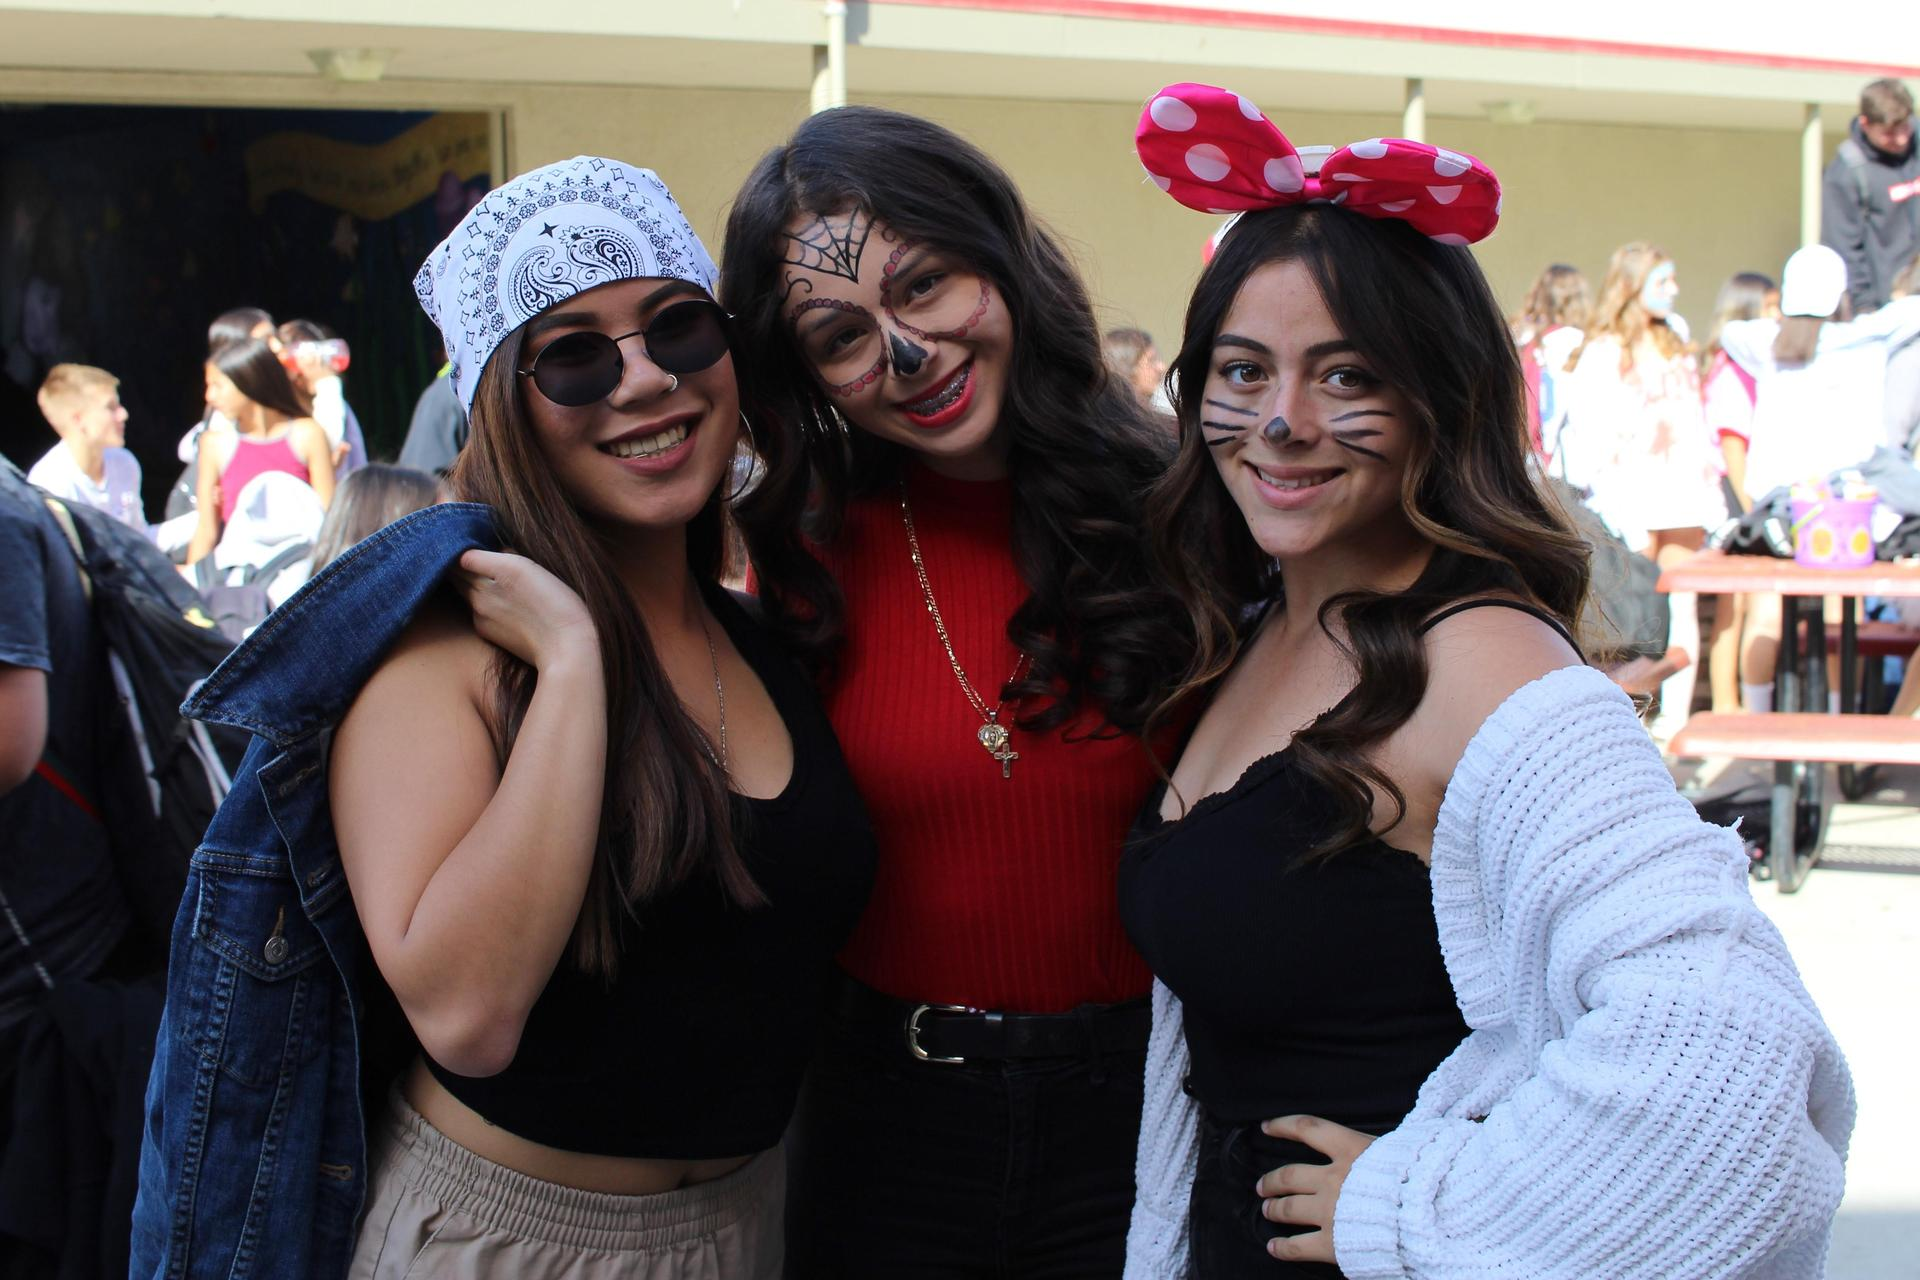 R.J. Lontok as a rapper, Liz Cornejo as Dia de los Muertos, Clara Sahagun as Minnie Mouse